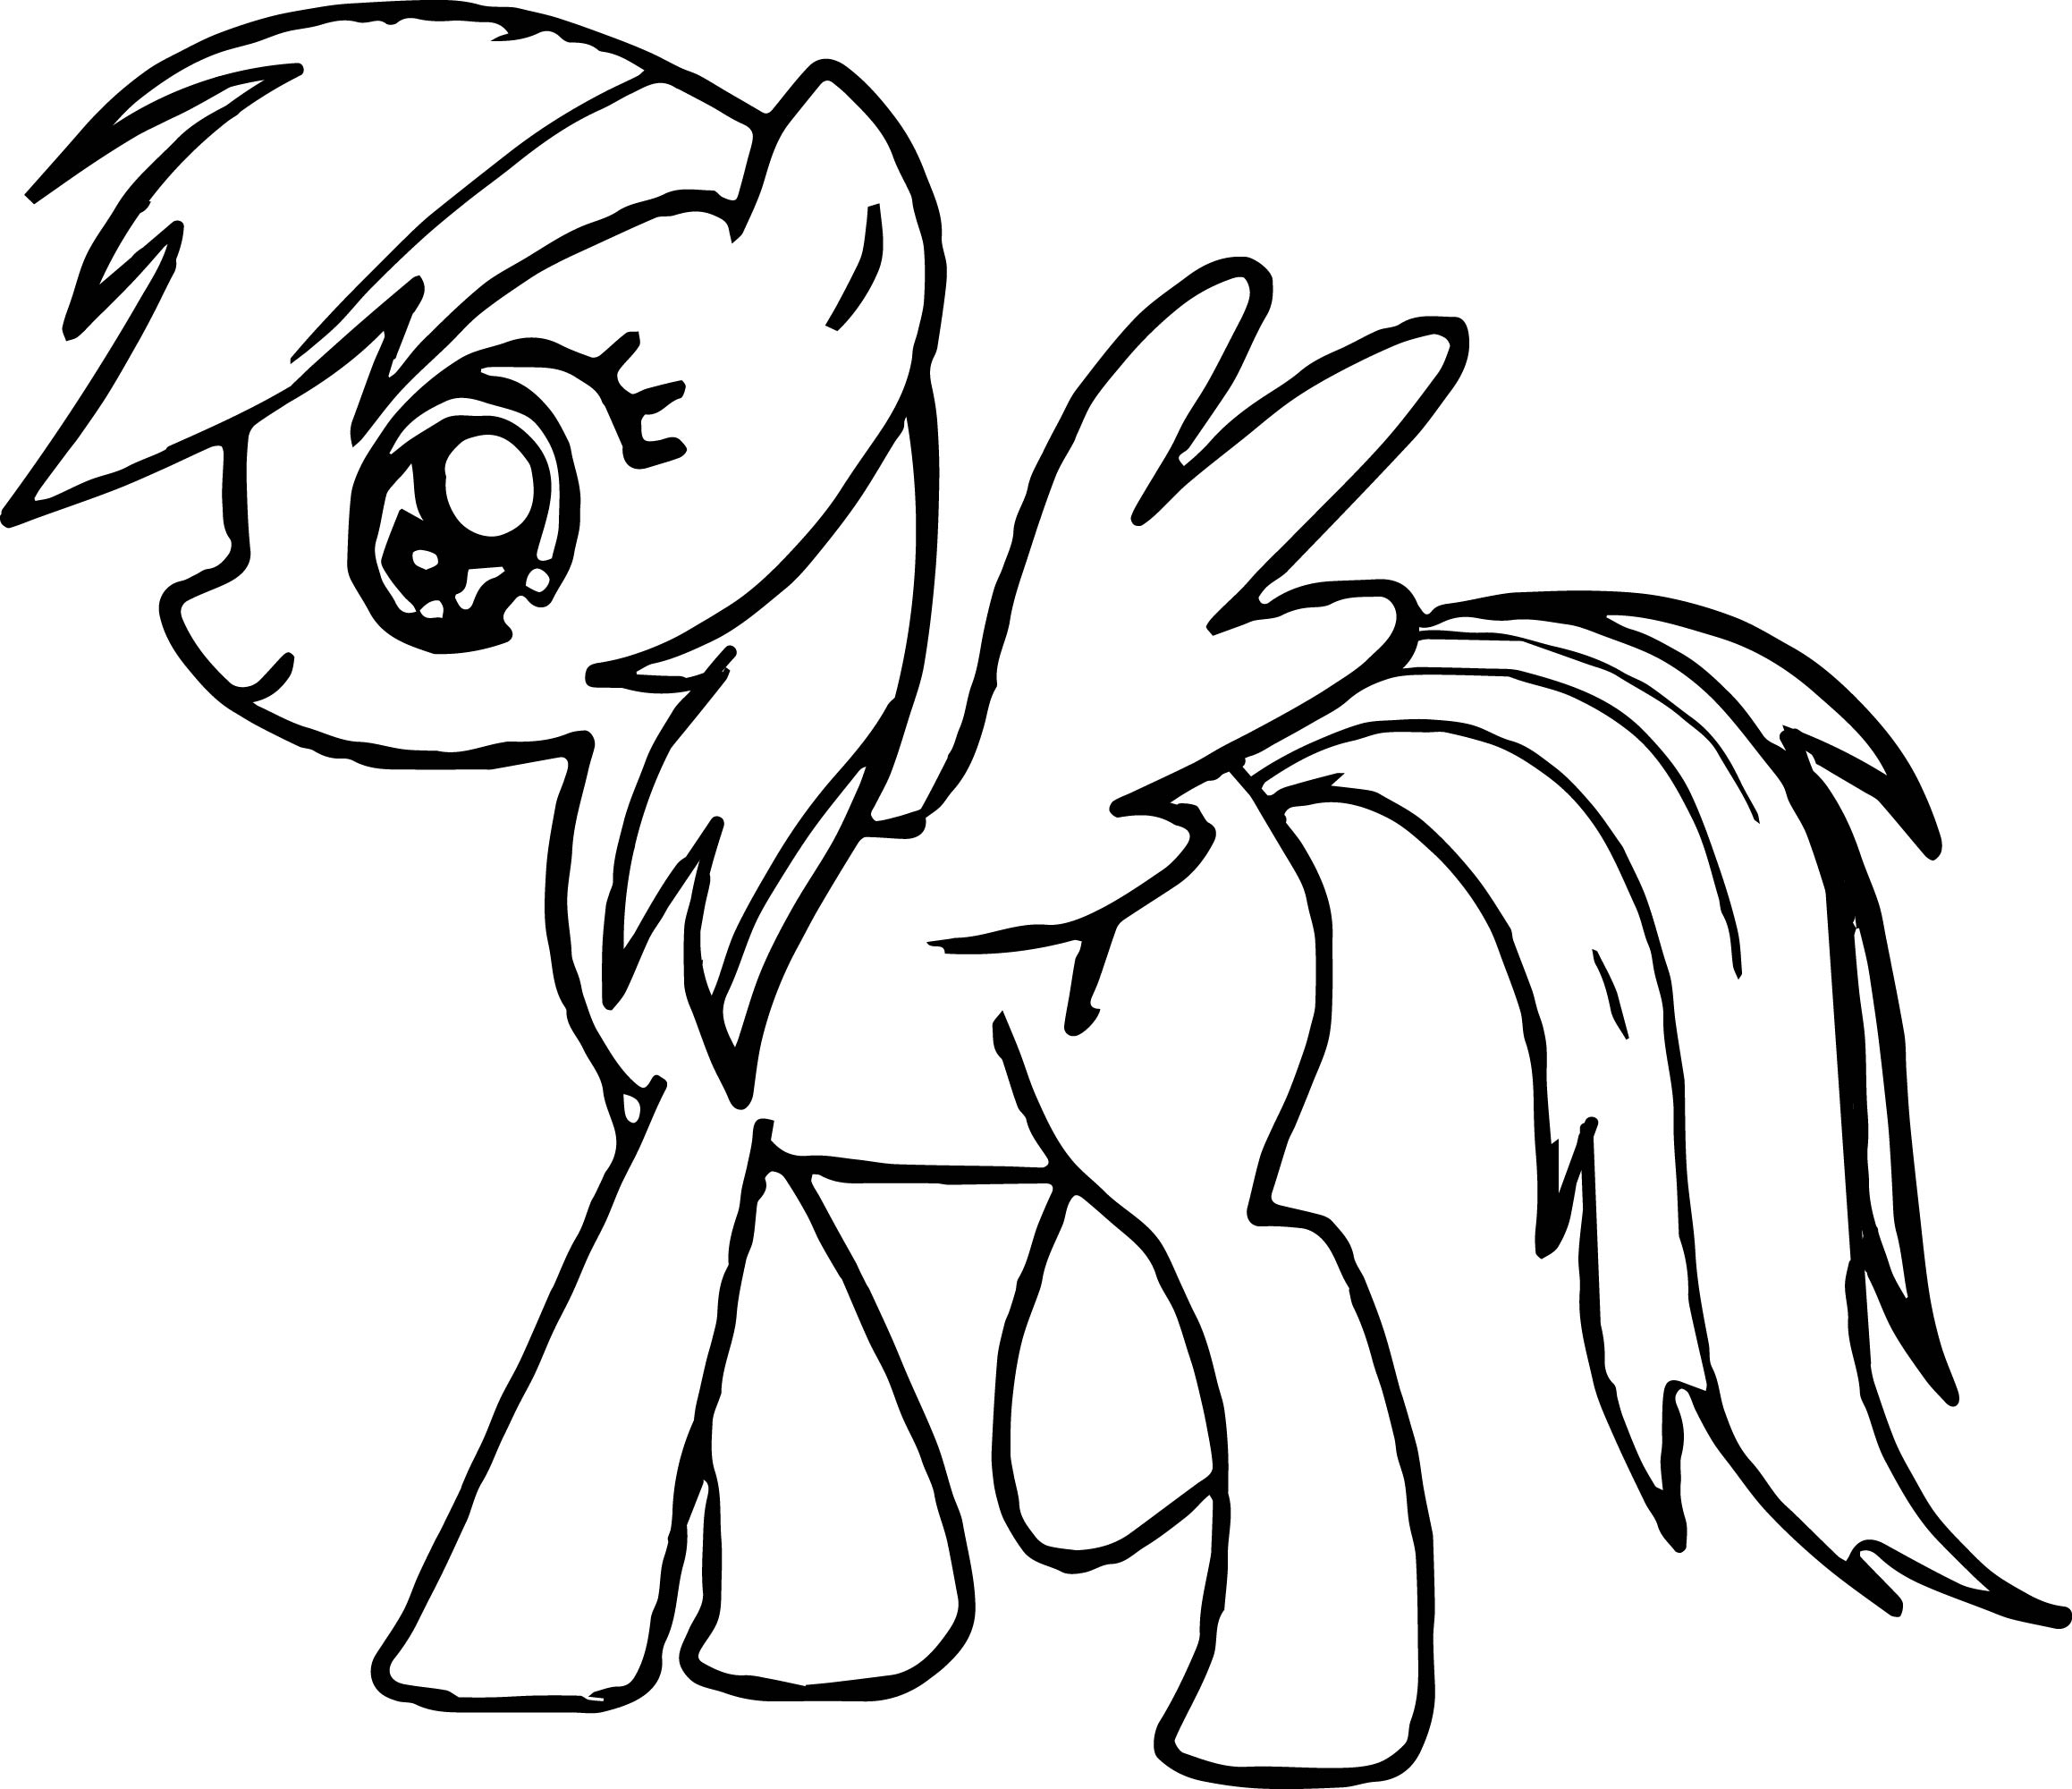 little pony coloring pages - walking little pony coloring page